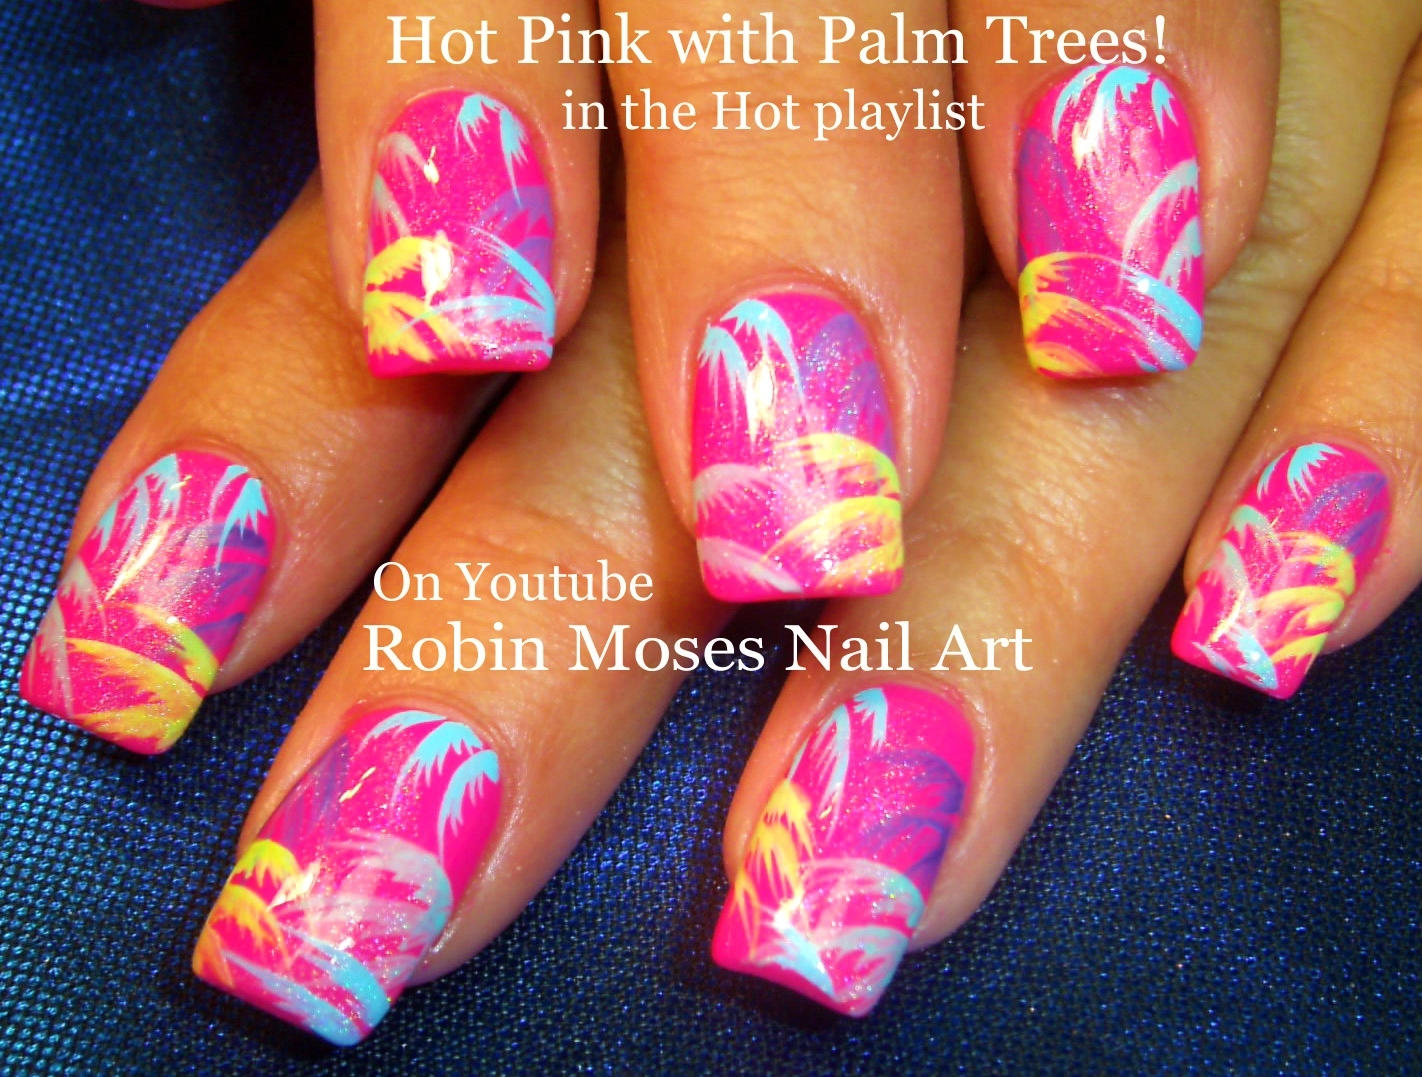 Robin moses nail art easy neon pink summer nails up and perfect easy neon pink summer nails up and perfect for this summer heat have fun painting prinsesfo Gallery